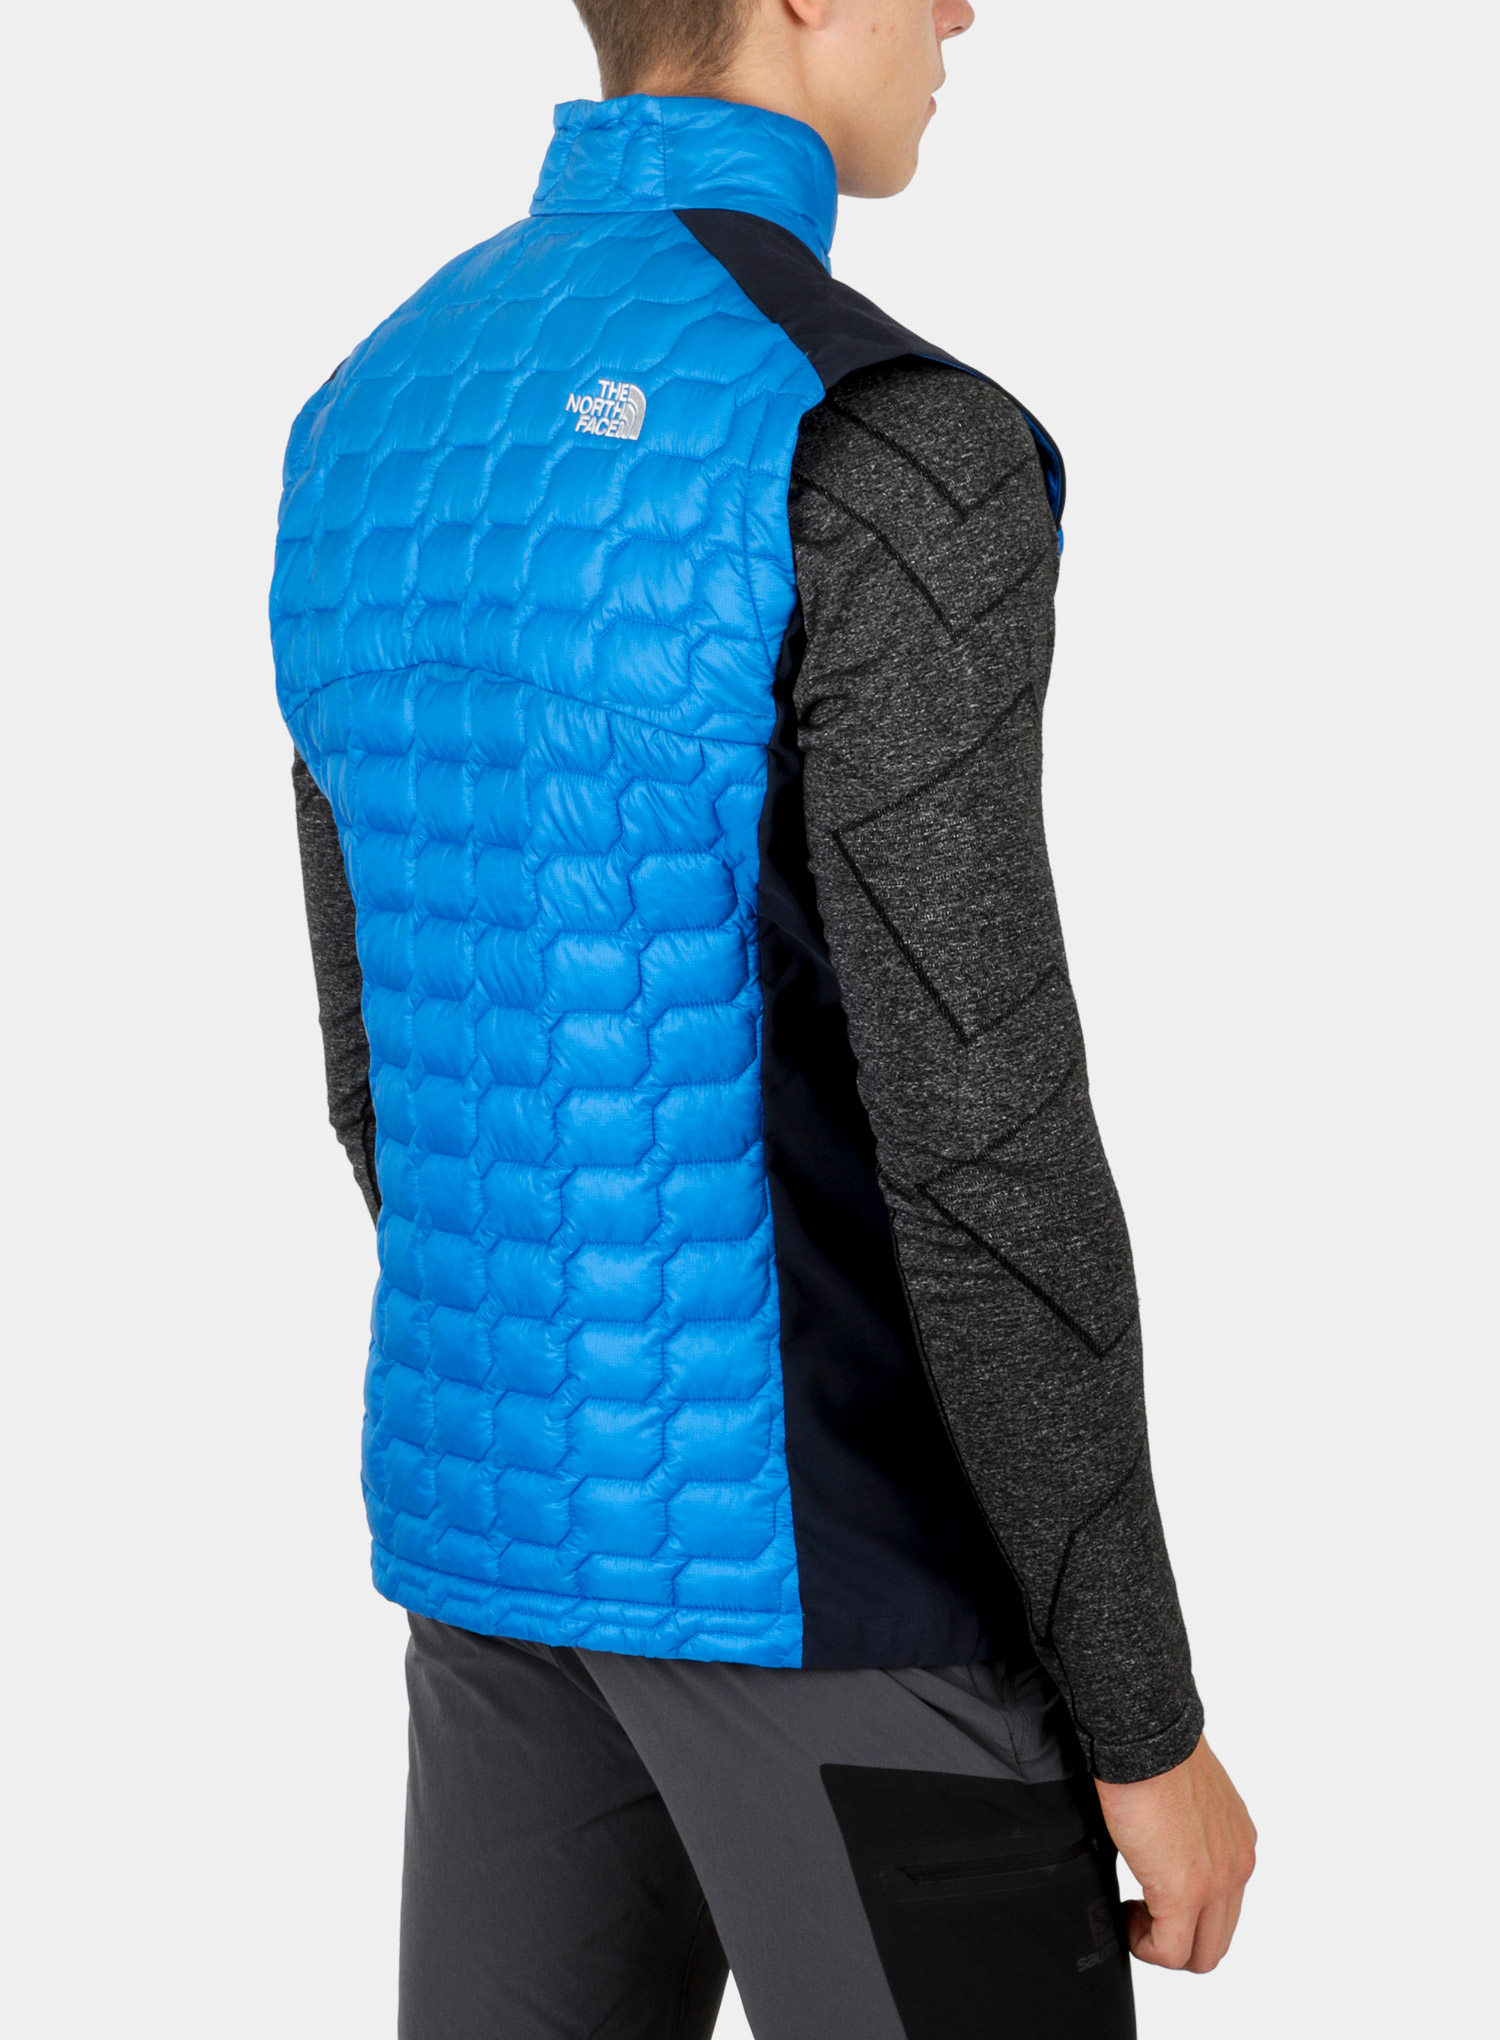 Kamizelka The North Face New Tansa Thermoball Vest - bomber blue/navy - zdjęcie nr. 4